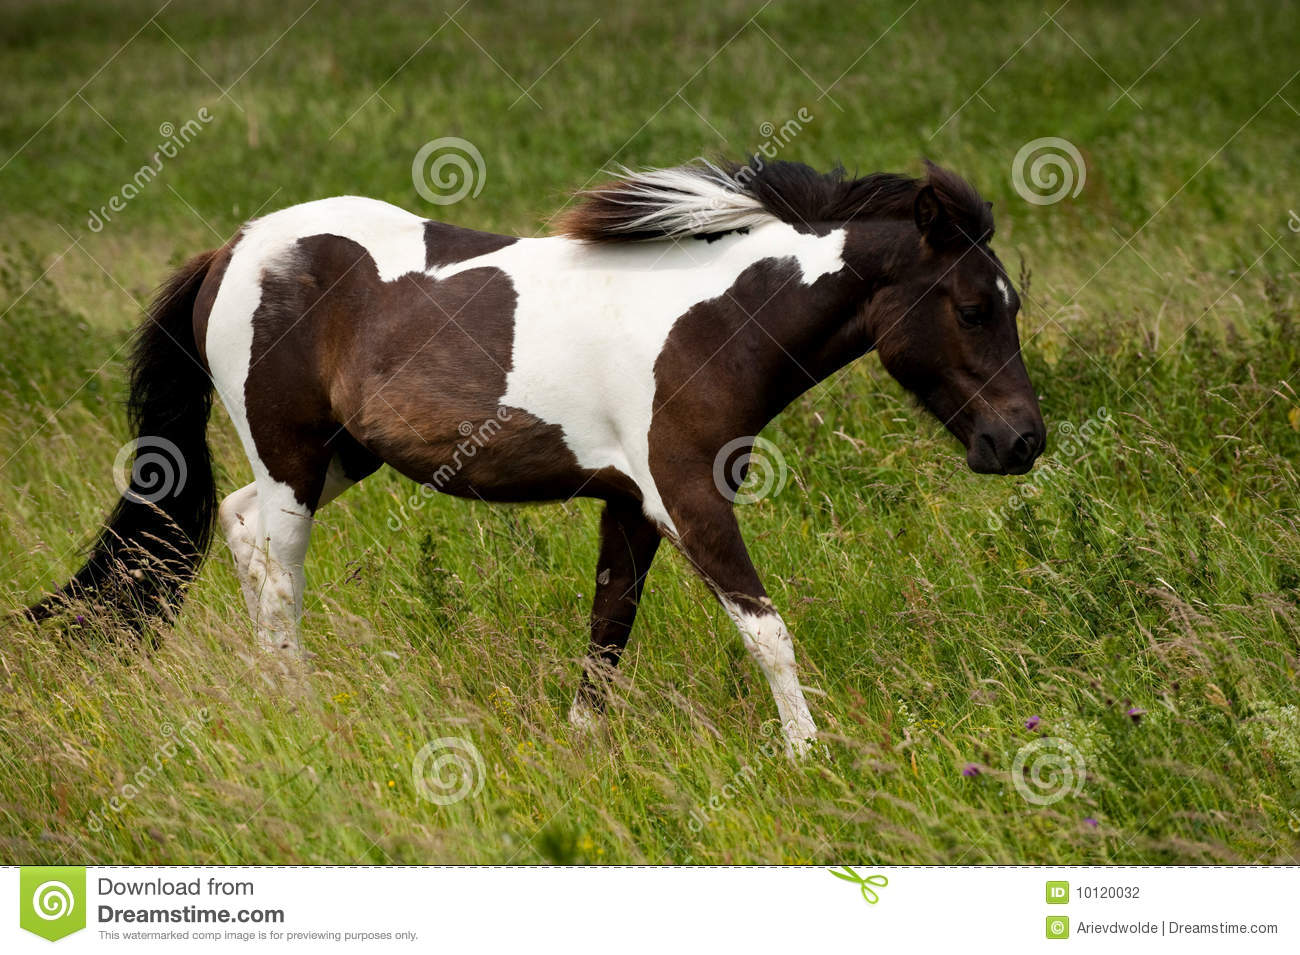 A brown white horse stock photo. Image of seasonal, brown